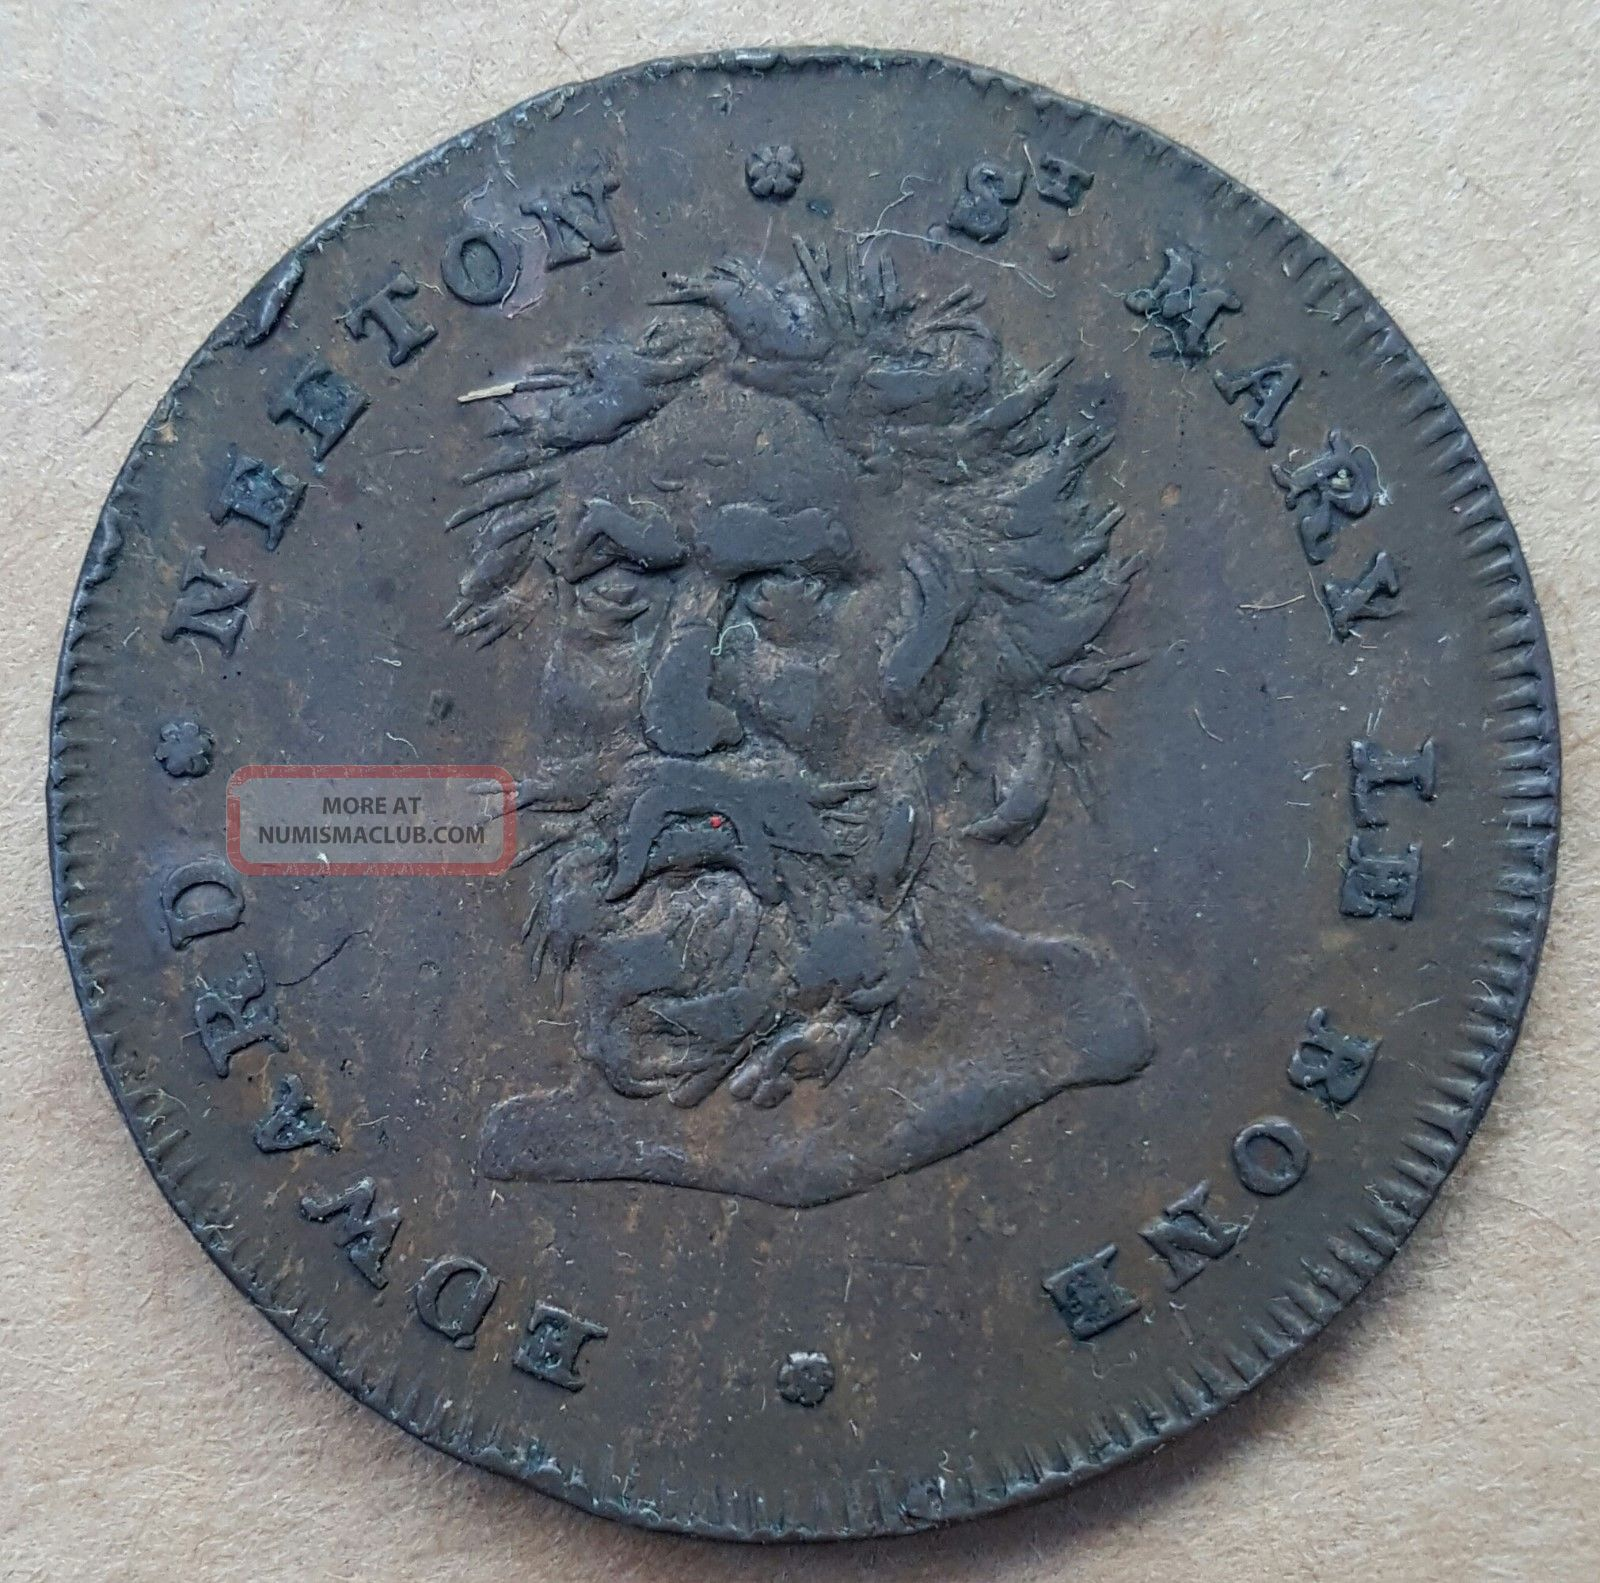 1795 Great Britain Middlesex Neeton Half Penny Conder Token D&h 390 UK (Great Britain) photo